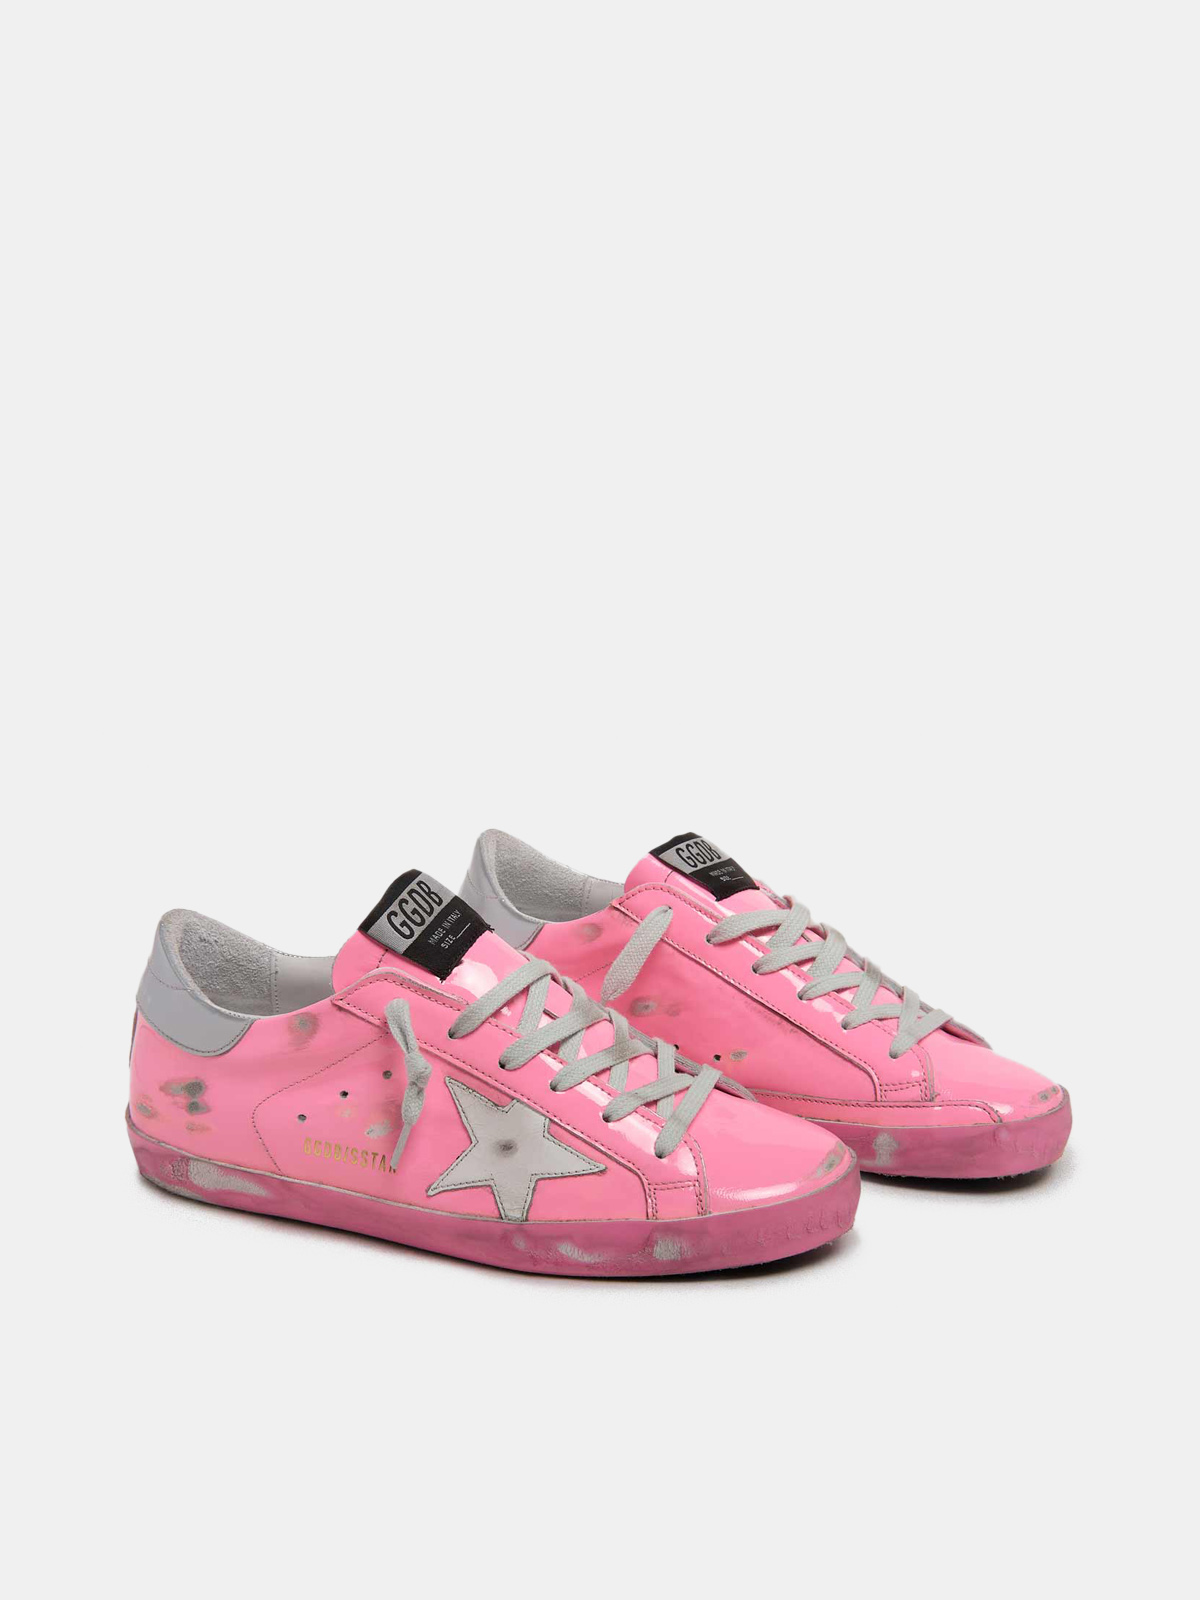 Golden Goose - Pink Super-Star sneakers with silver heel tab in